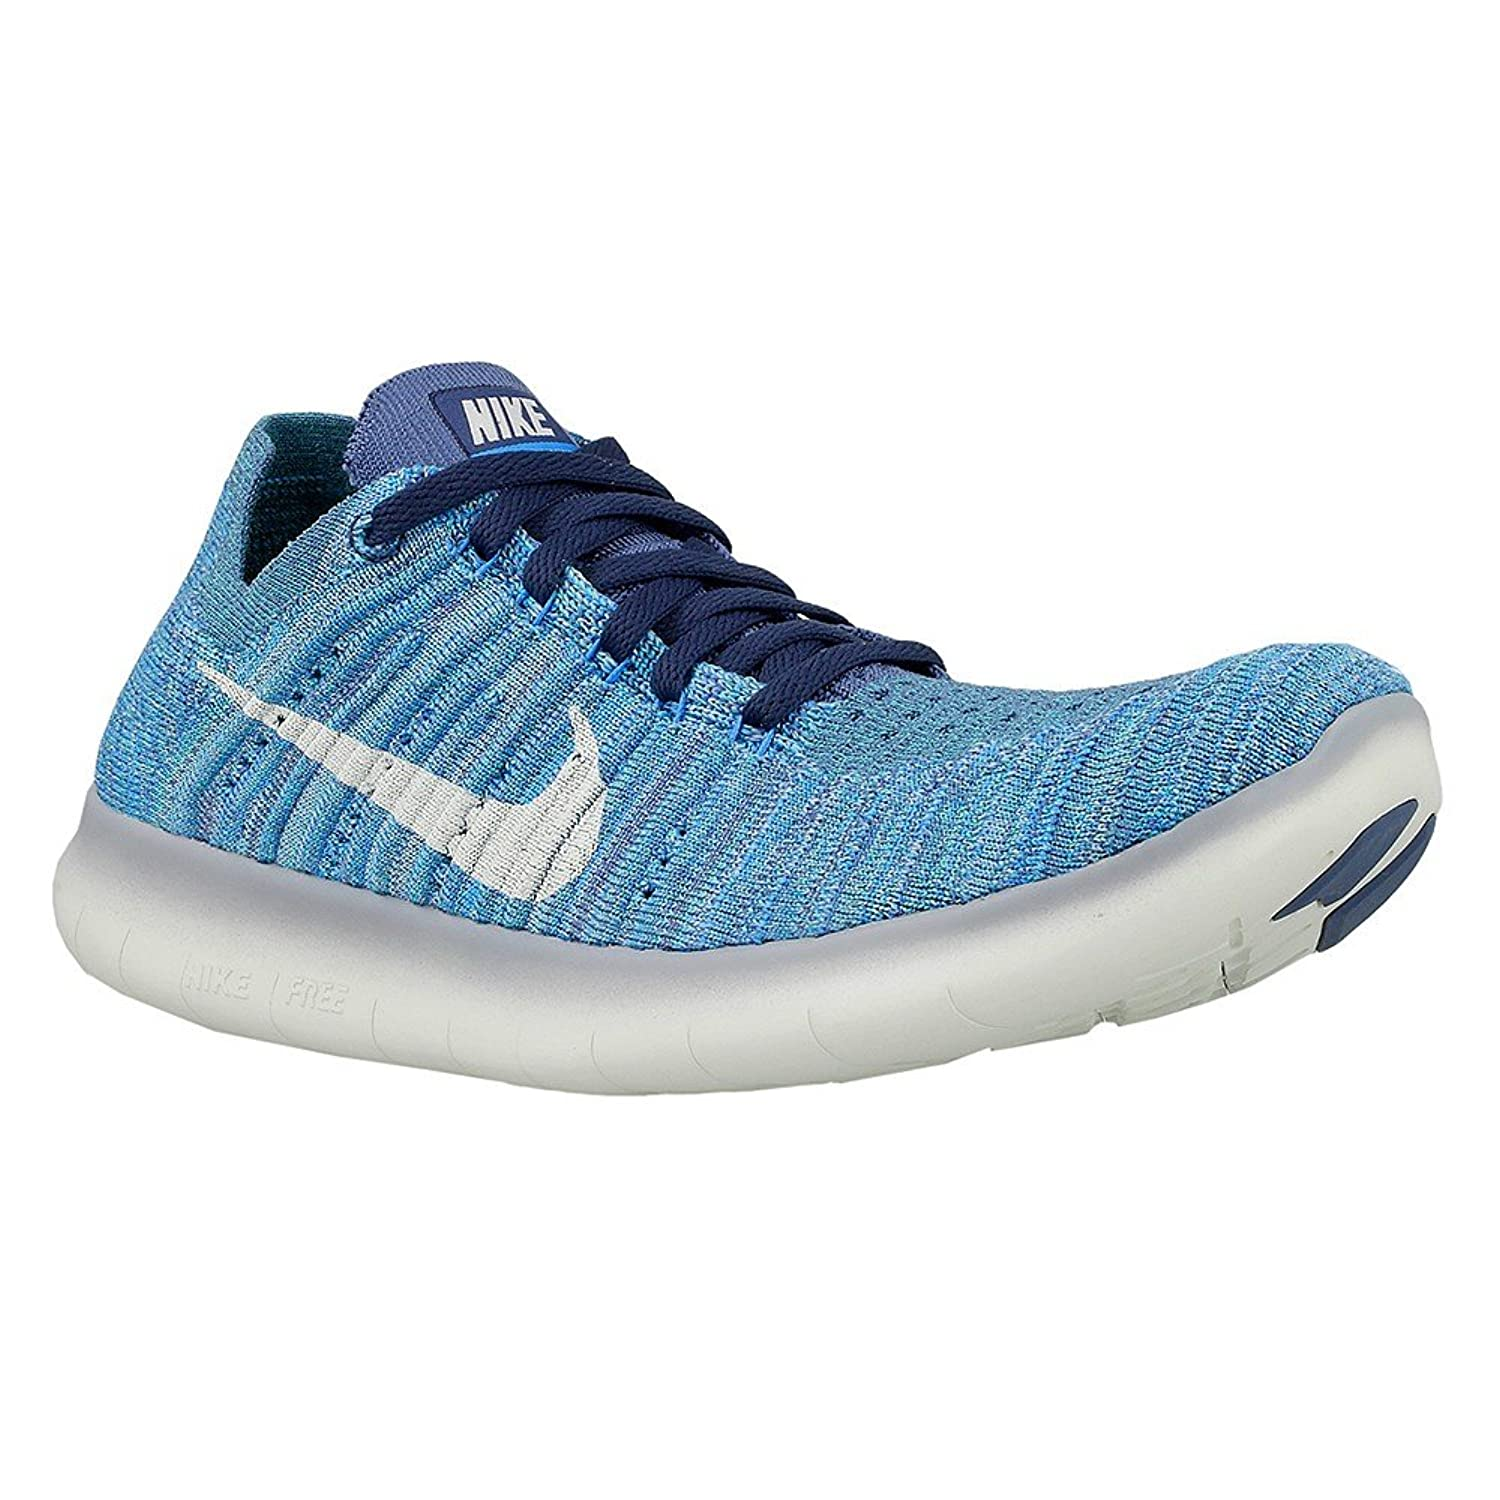 8020754d1aee1e Nike Women s Free Running Motion Flyknit Shoes Ocean Fog White blue Glow  9.5 B(M) US - rocket-league-community.de